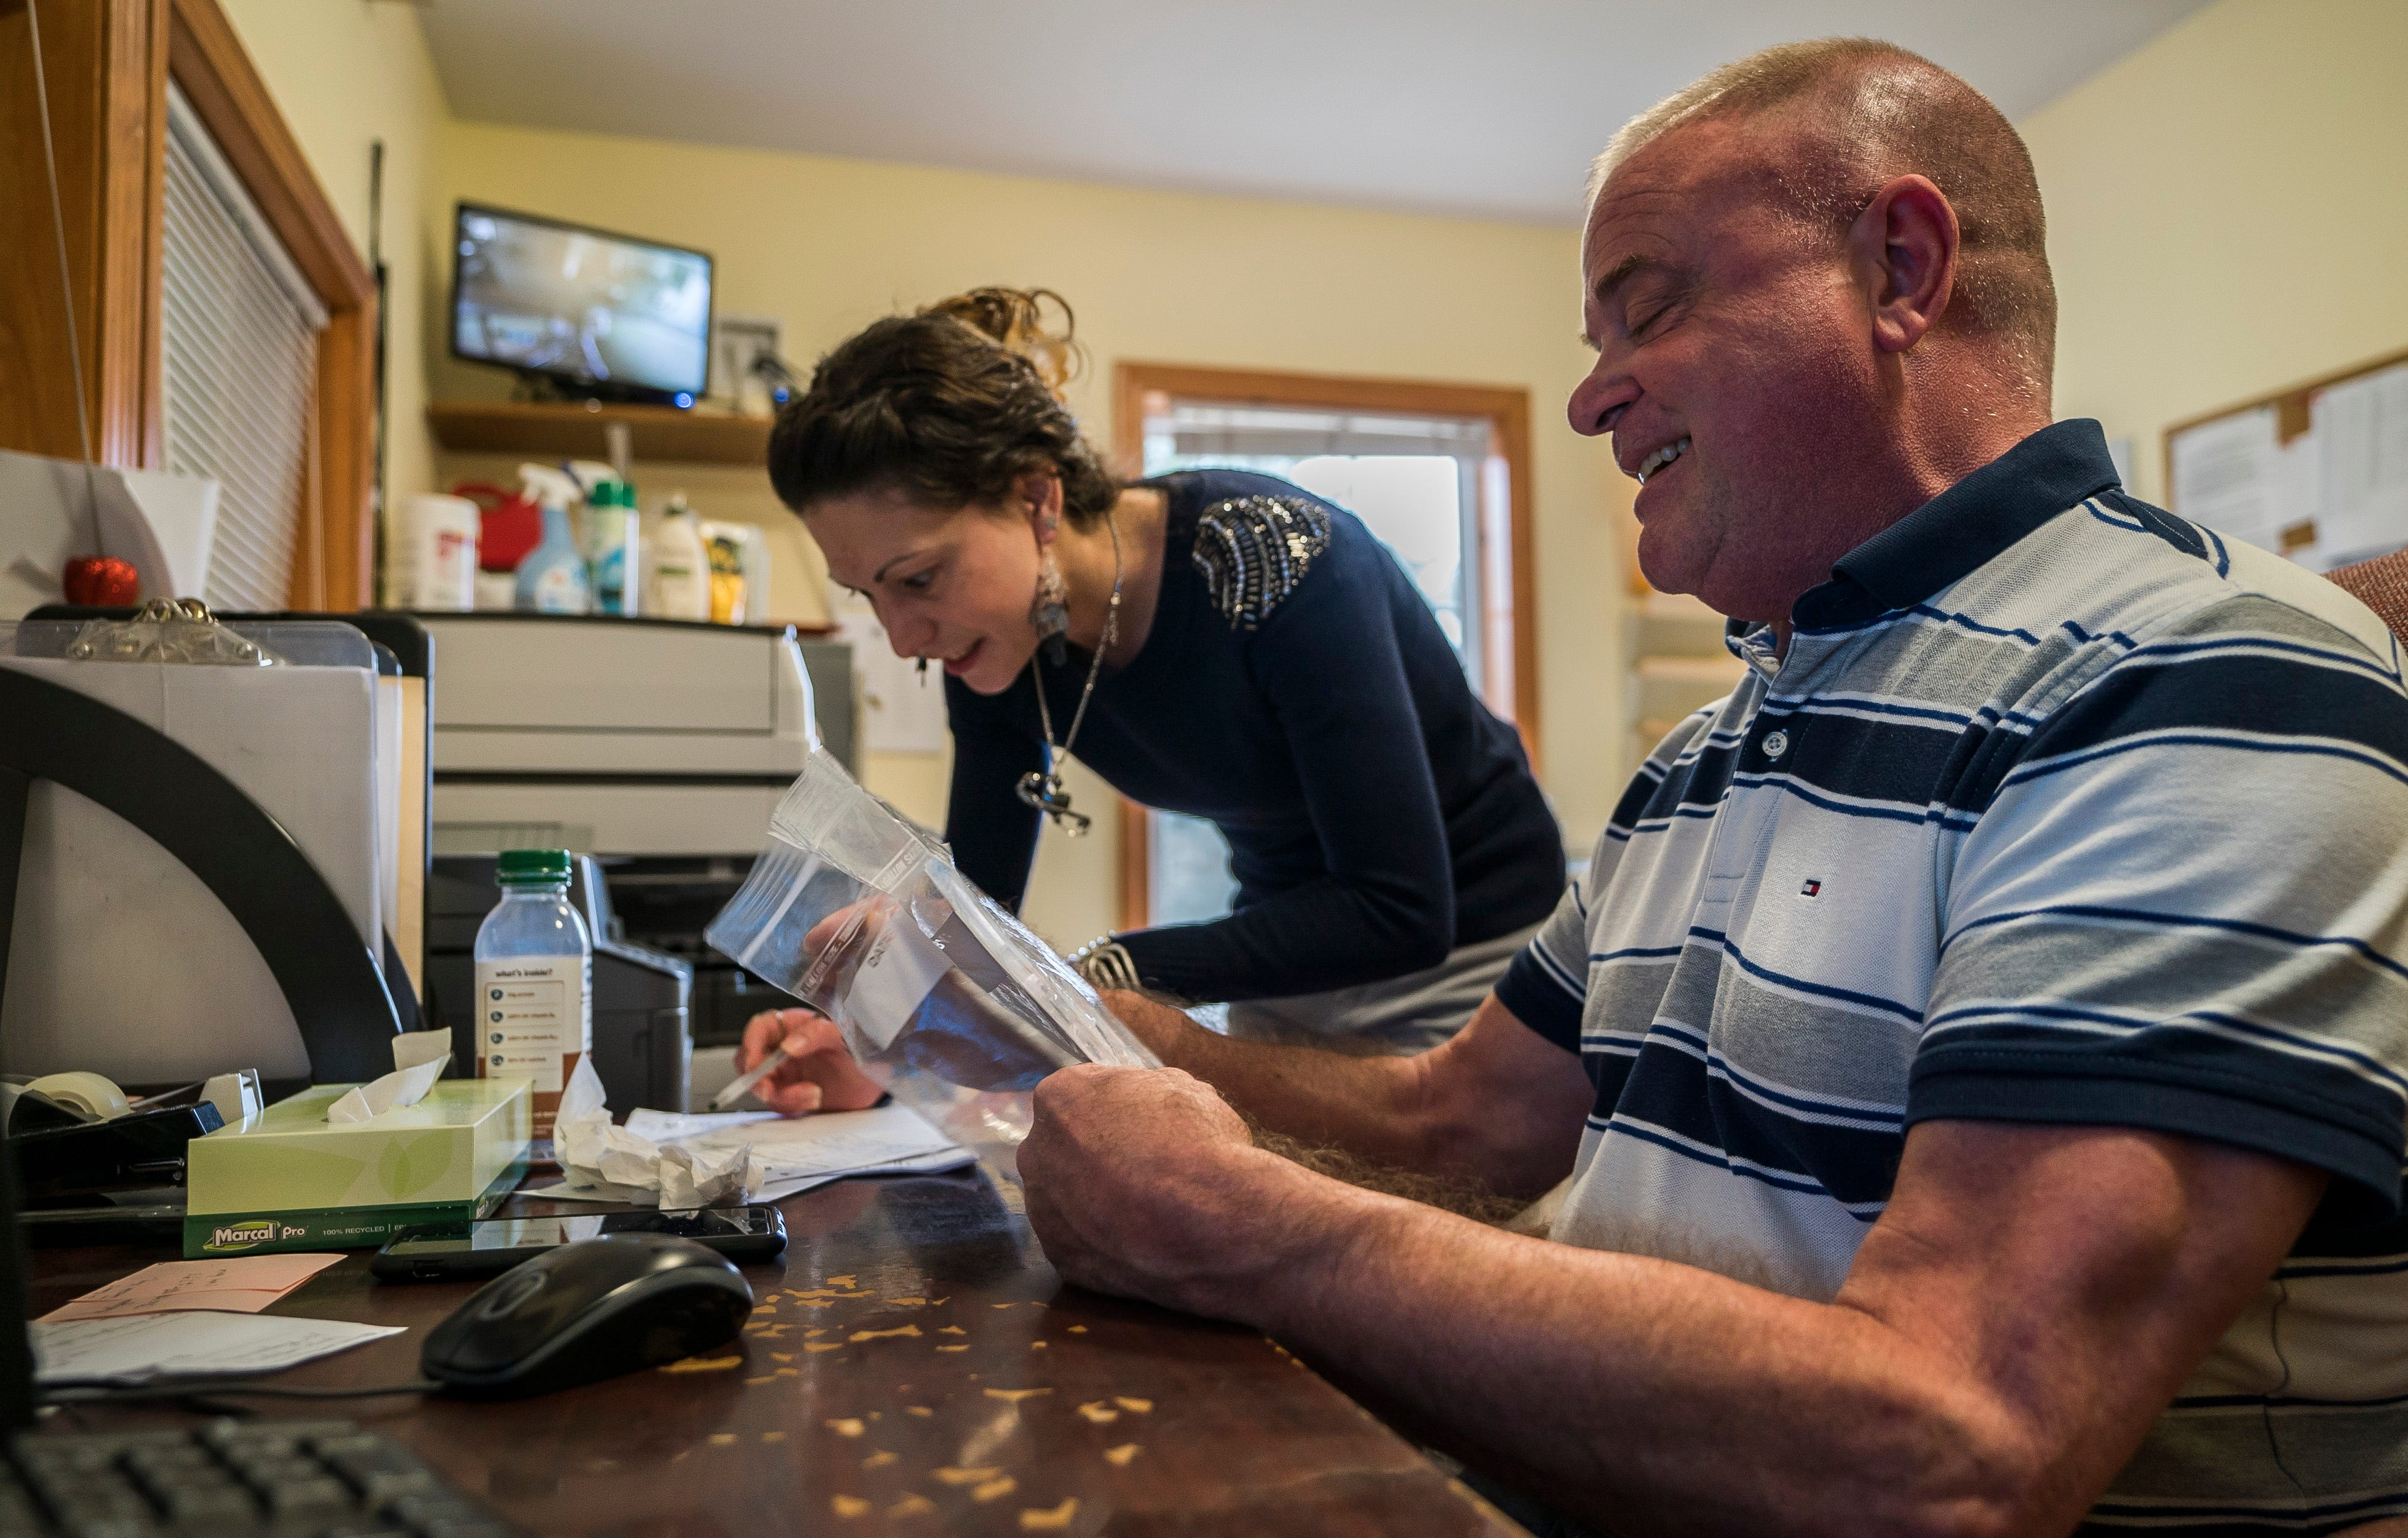 Michael Lowe processes intake paperwork with Assistant Manager Chelsea Lamore for a new client at the Oasis House in Hyde Park, a Lamoille County Mental Health Facility that opened in 2013. Lowe is the only staffer still there who started when the in-patient mental health facility opened.